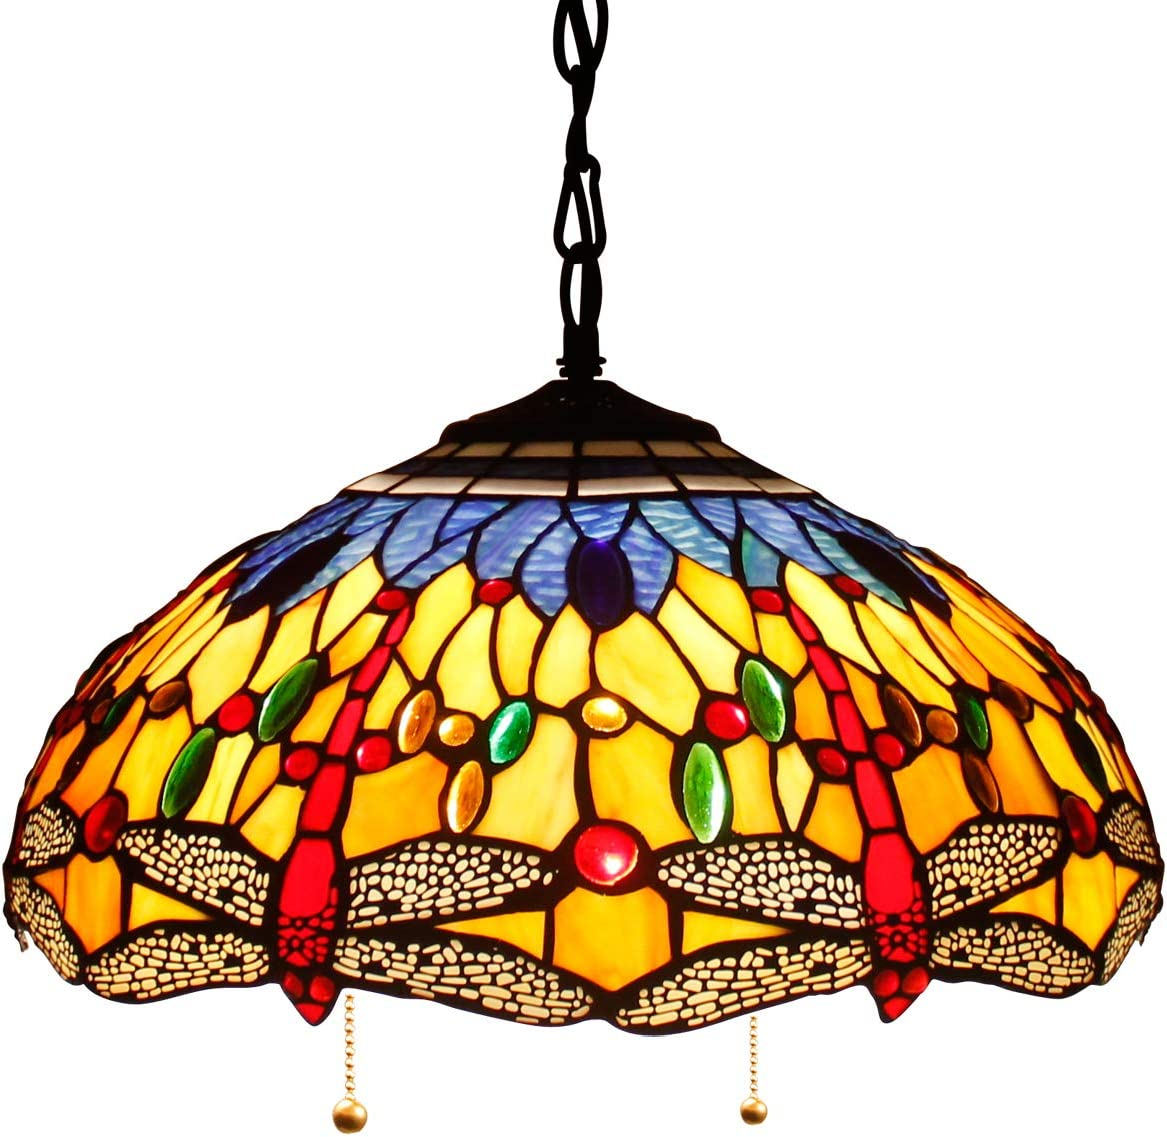 Tiffany Hanging Lamp 16 Inch Pull Chain Blue Orange Dragonfly Stained Glass Crystal Bead Lampshade Anqitue Style Pendant 2 Light Fixture for Dinner Room Living Room Bedroom S168 WERFACTORY